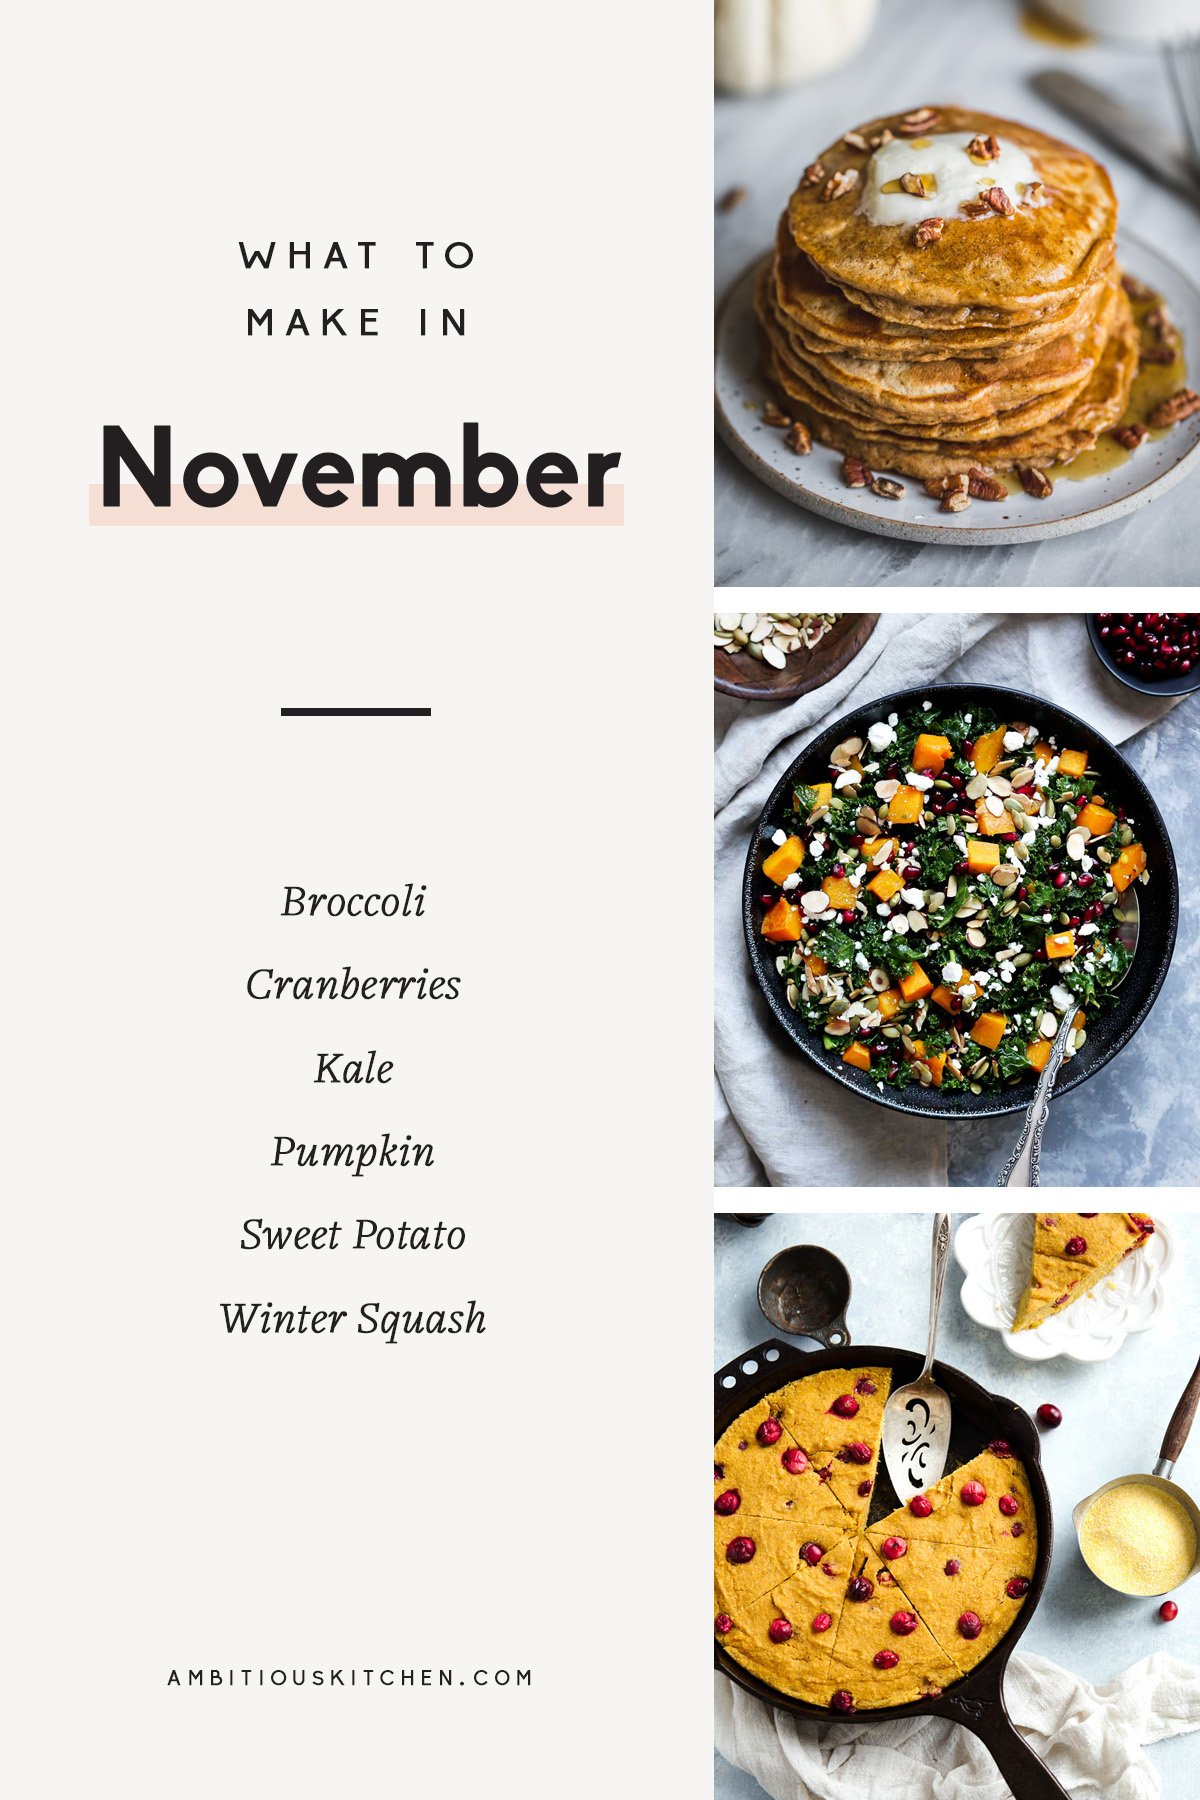 Delicious, comforting recipes to cook in November! These healthy fall recipes are a great way to use up seasonal produce like pumpkin, winter squash, kale, sweet potatoes, and cranberries for any meal of the day.